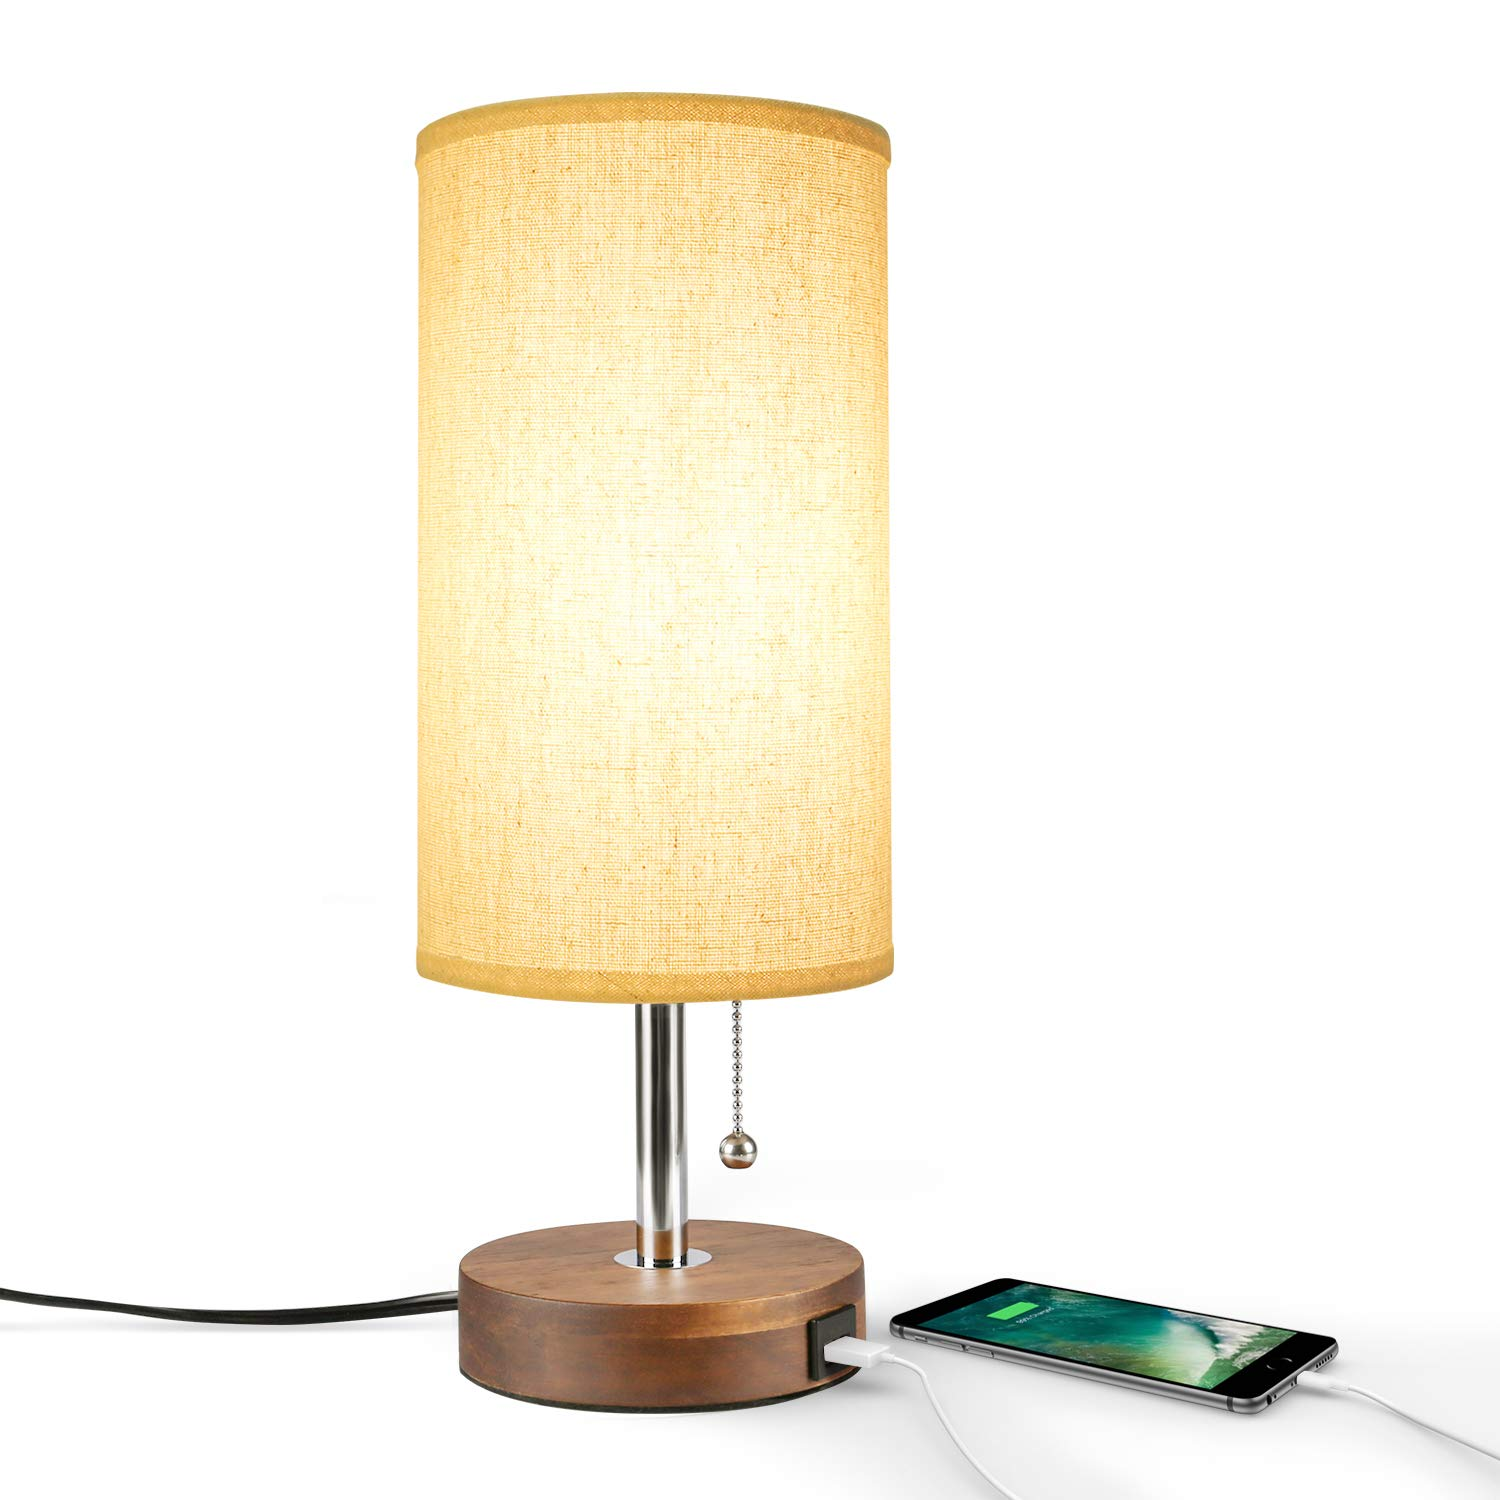 Table Lamp USB, Bedside Desk Lamp, Minimalist Modern Solid Wood Nightstand Lamp with USB Charging Port,Unique Lampshde,Convenient Pull Chain for Bedroom Living Room